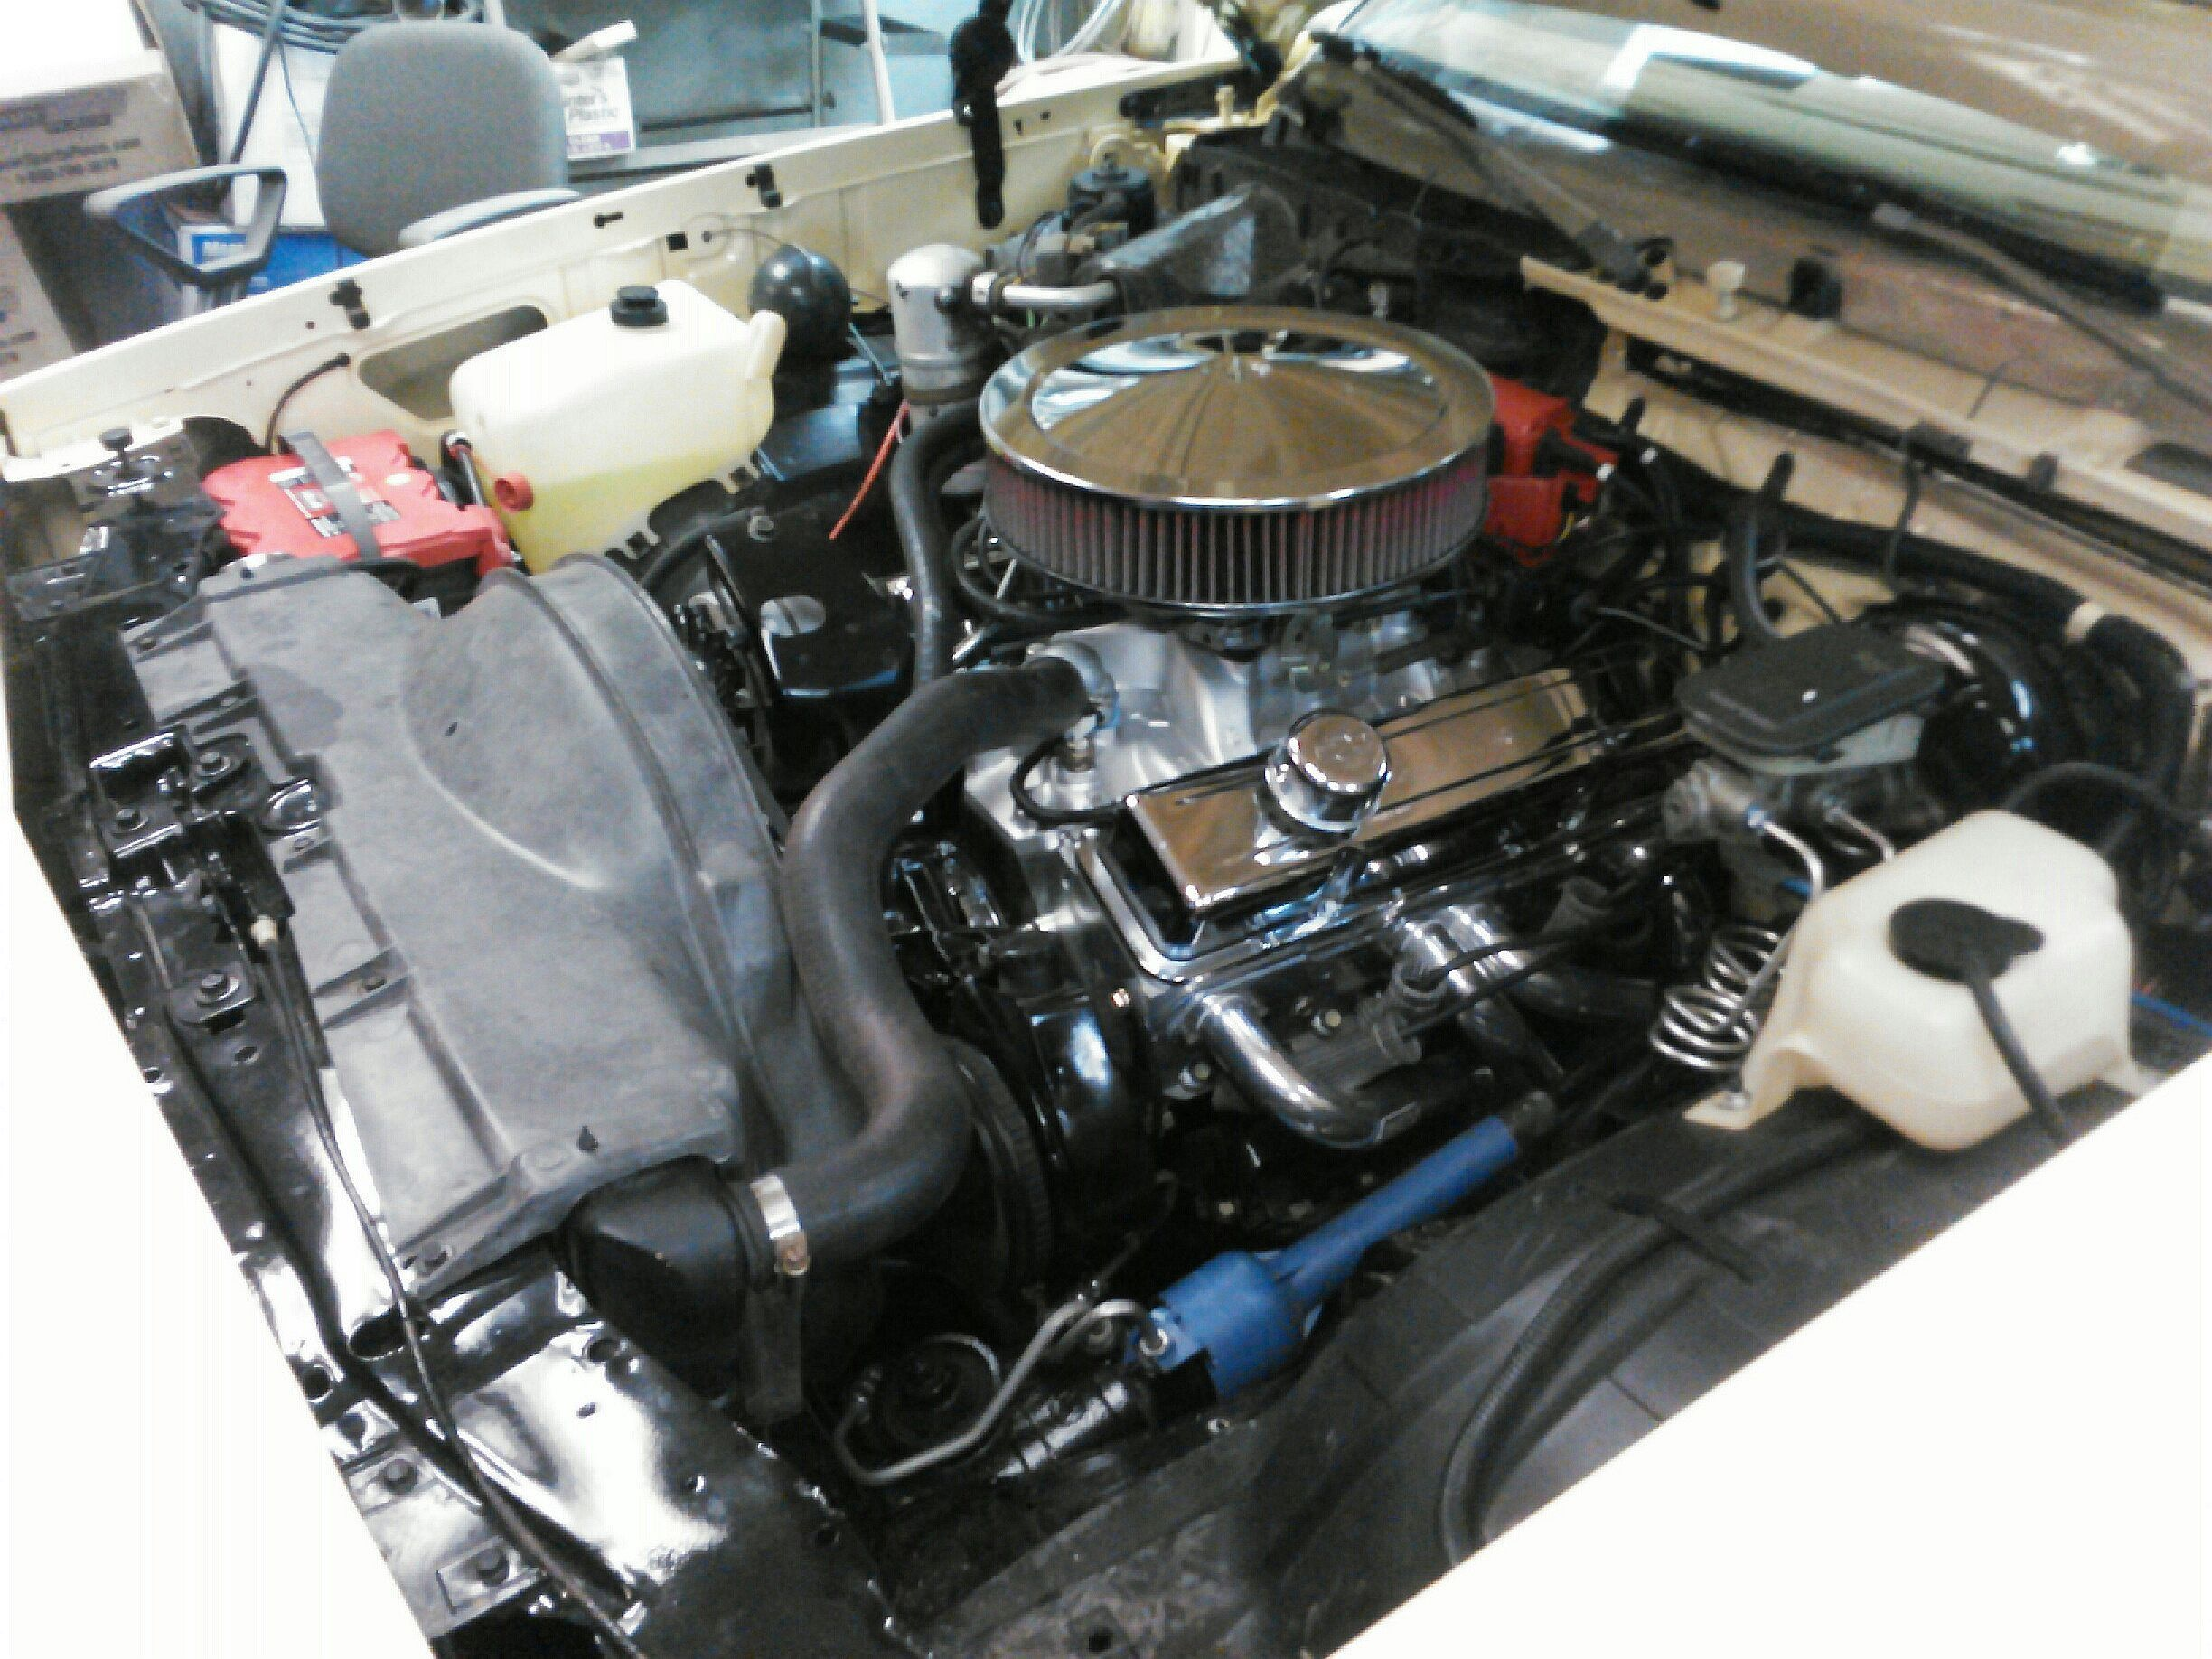 355ci crate engine small block gm style longblock aluminum engine malvernweather Choice Image